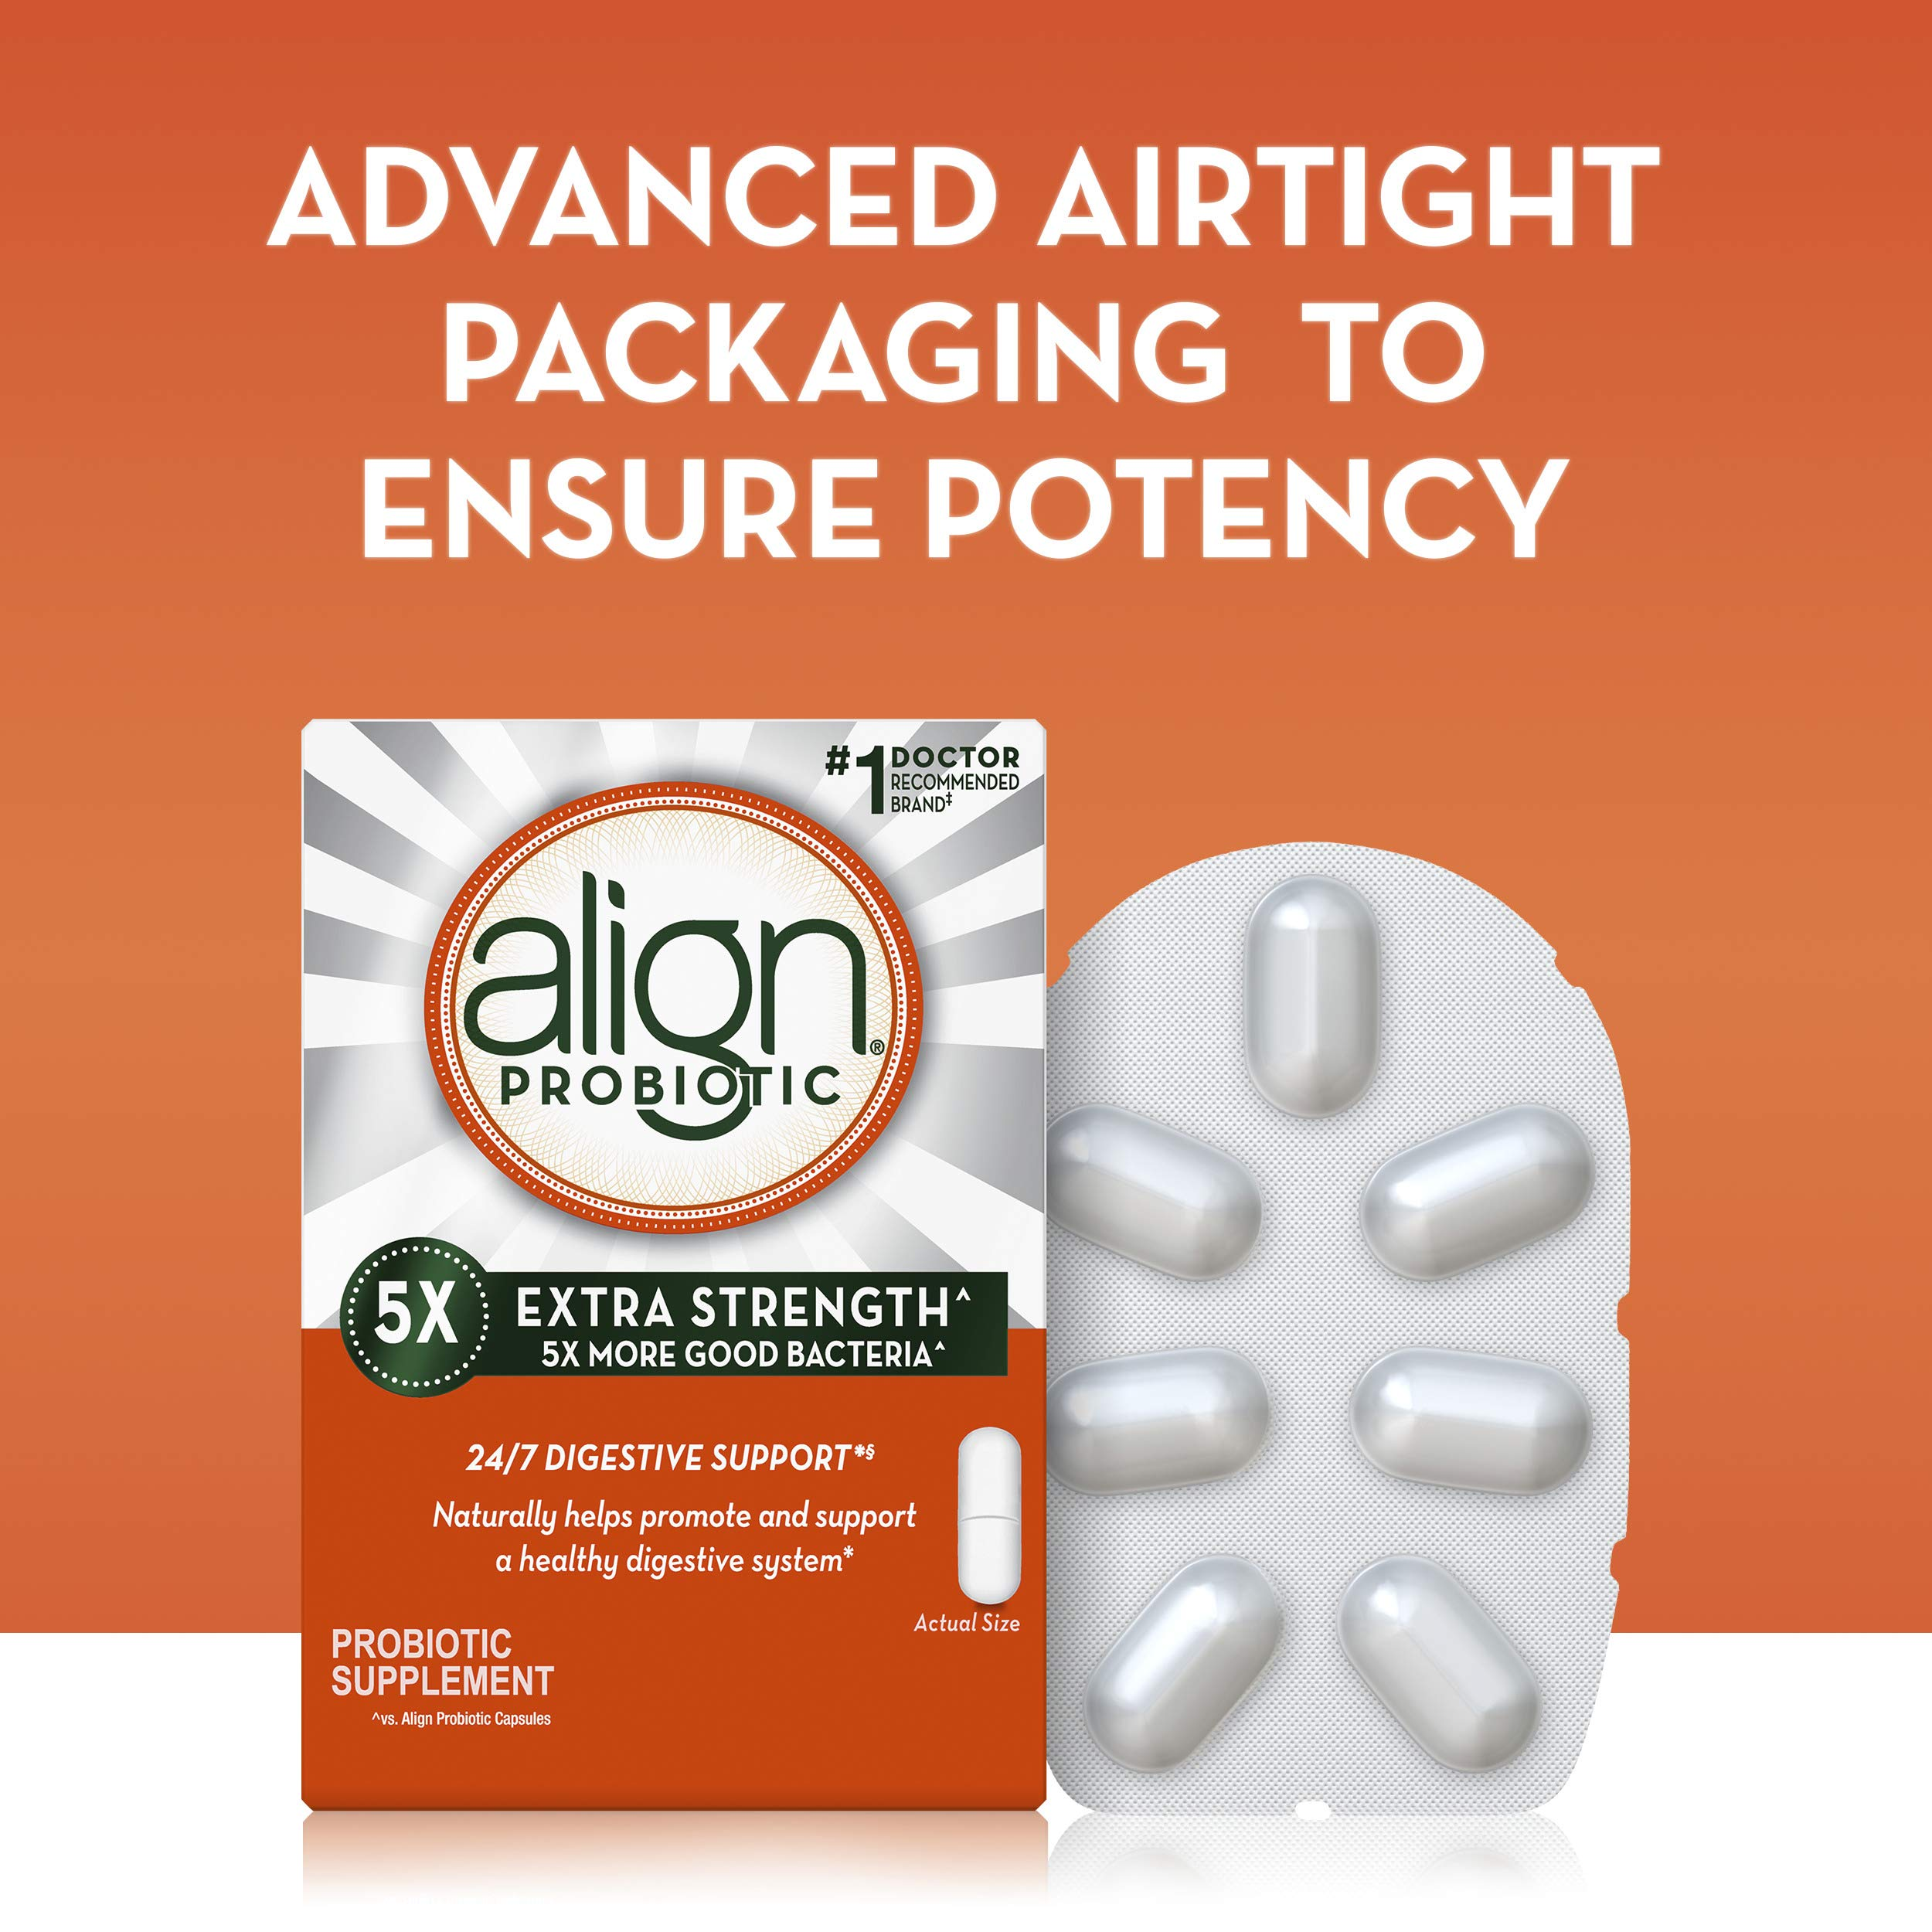 Align Extra Strength Probiotic, Probiotic Supplement for Digestive Health in Men and Women, 42 capsules, #1 Doctor Recommended Probiotics Brand(Packaging May Vary) by Align (Image #3)